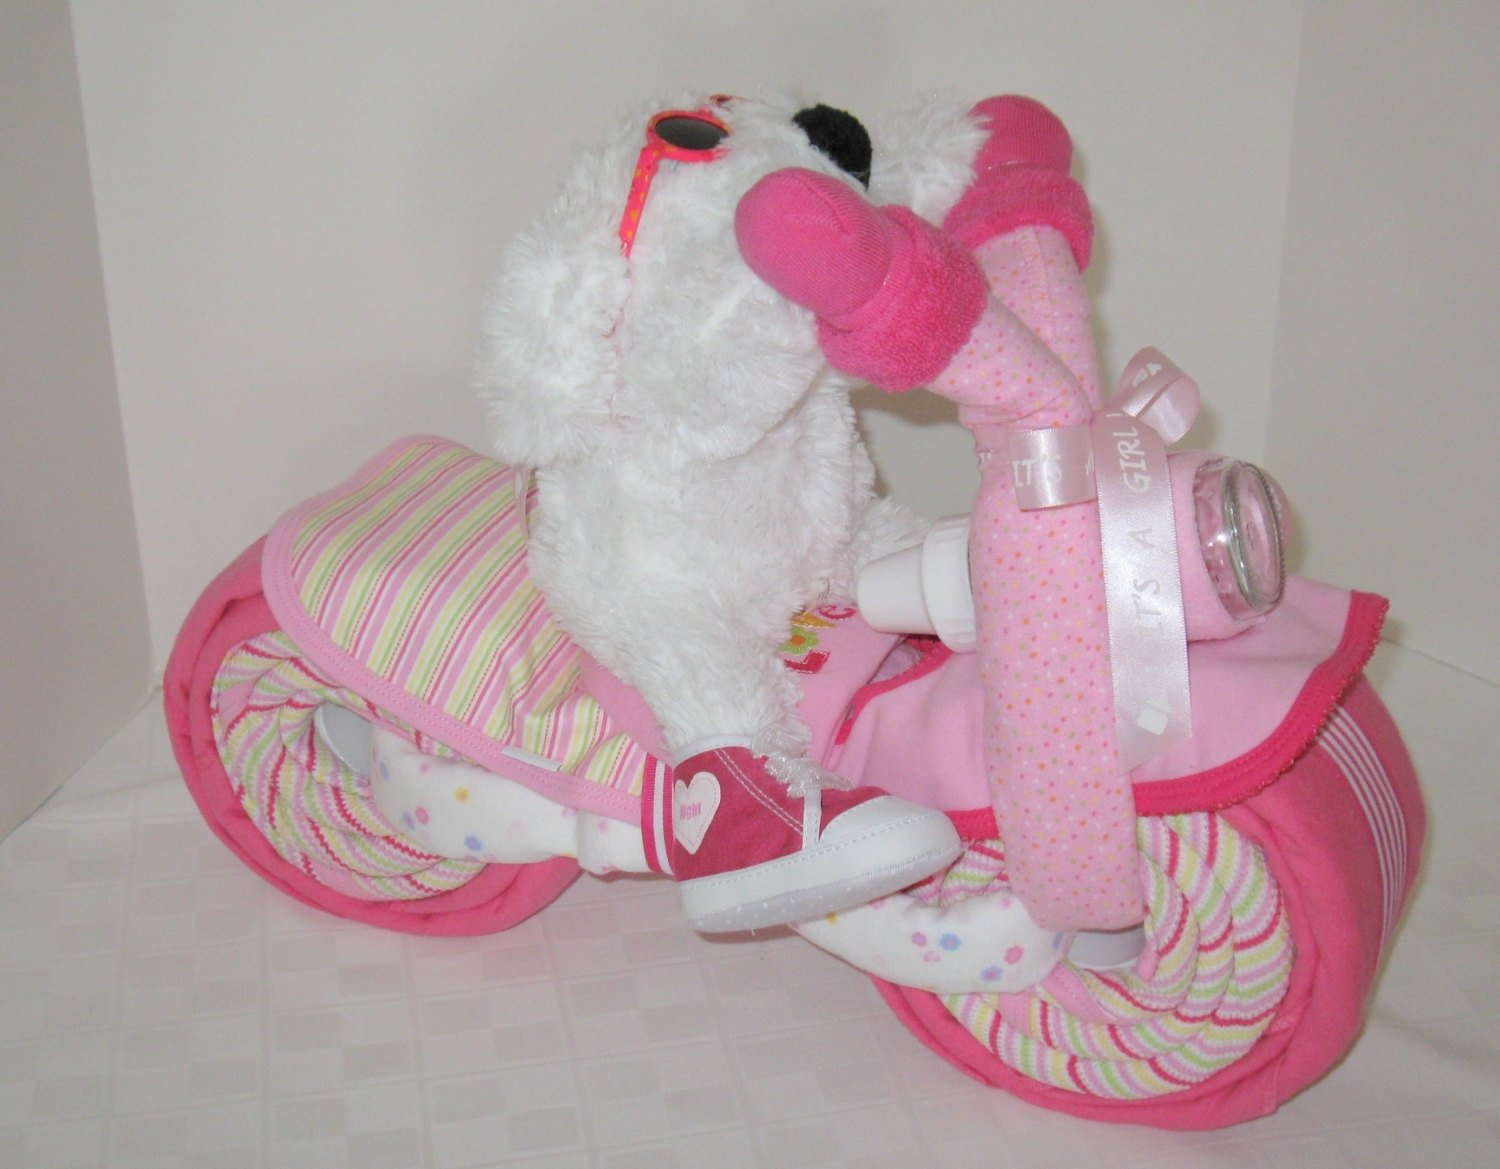 10 Fabulous Ideas For Baby Shower Gifts baby showers gift ideas omega center ideas for baby 4 2020